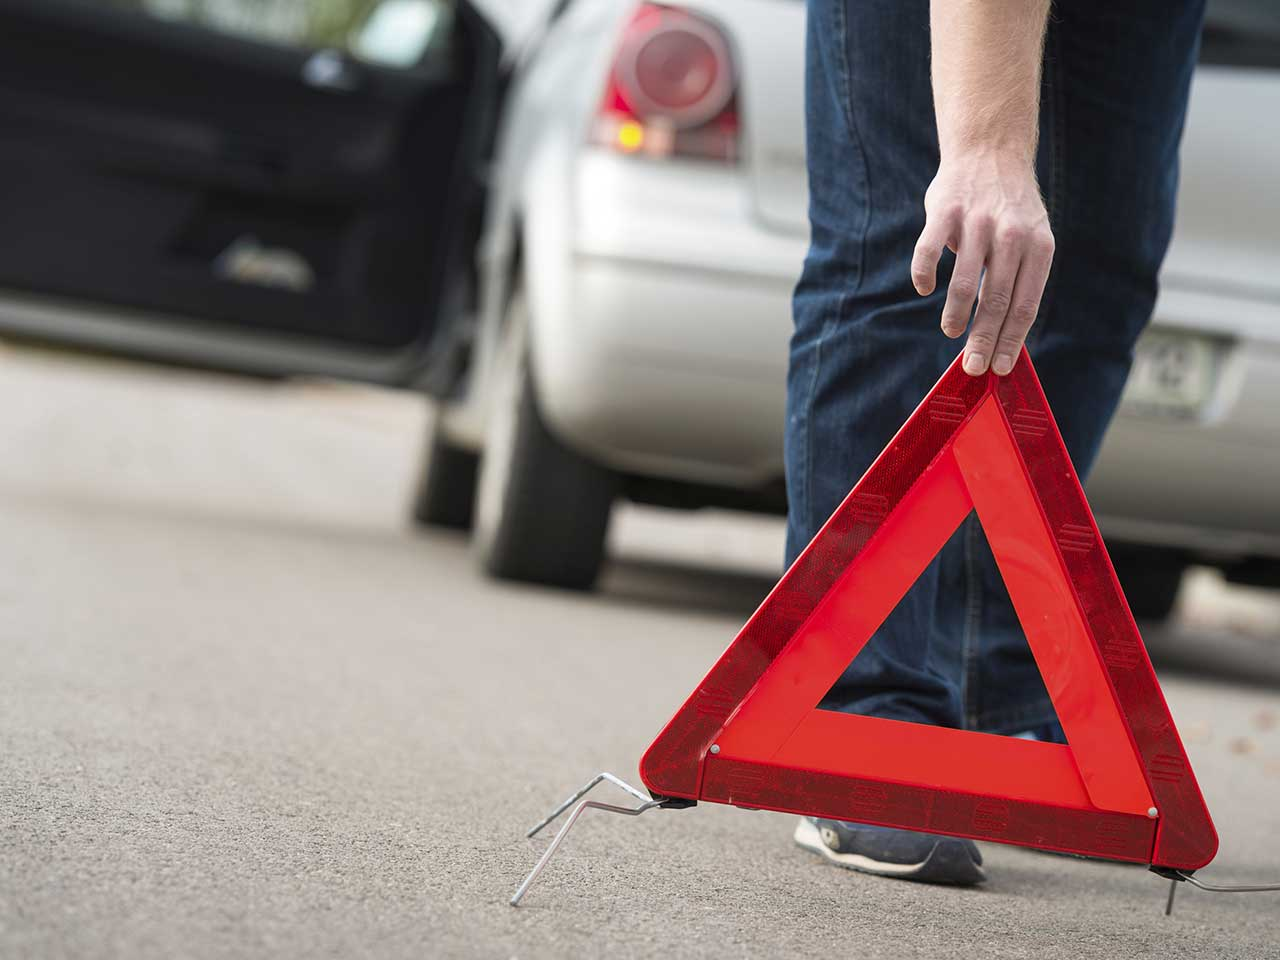 Scammer putting out a warning triangle to try to get motorists to pull over and help